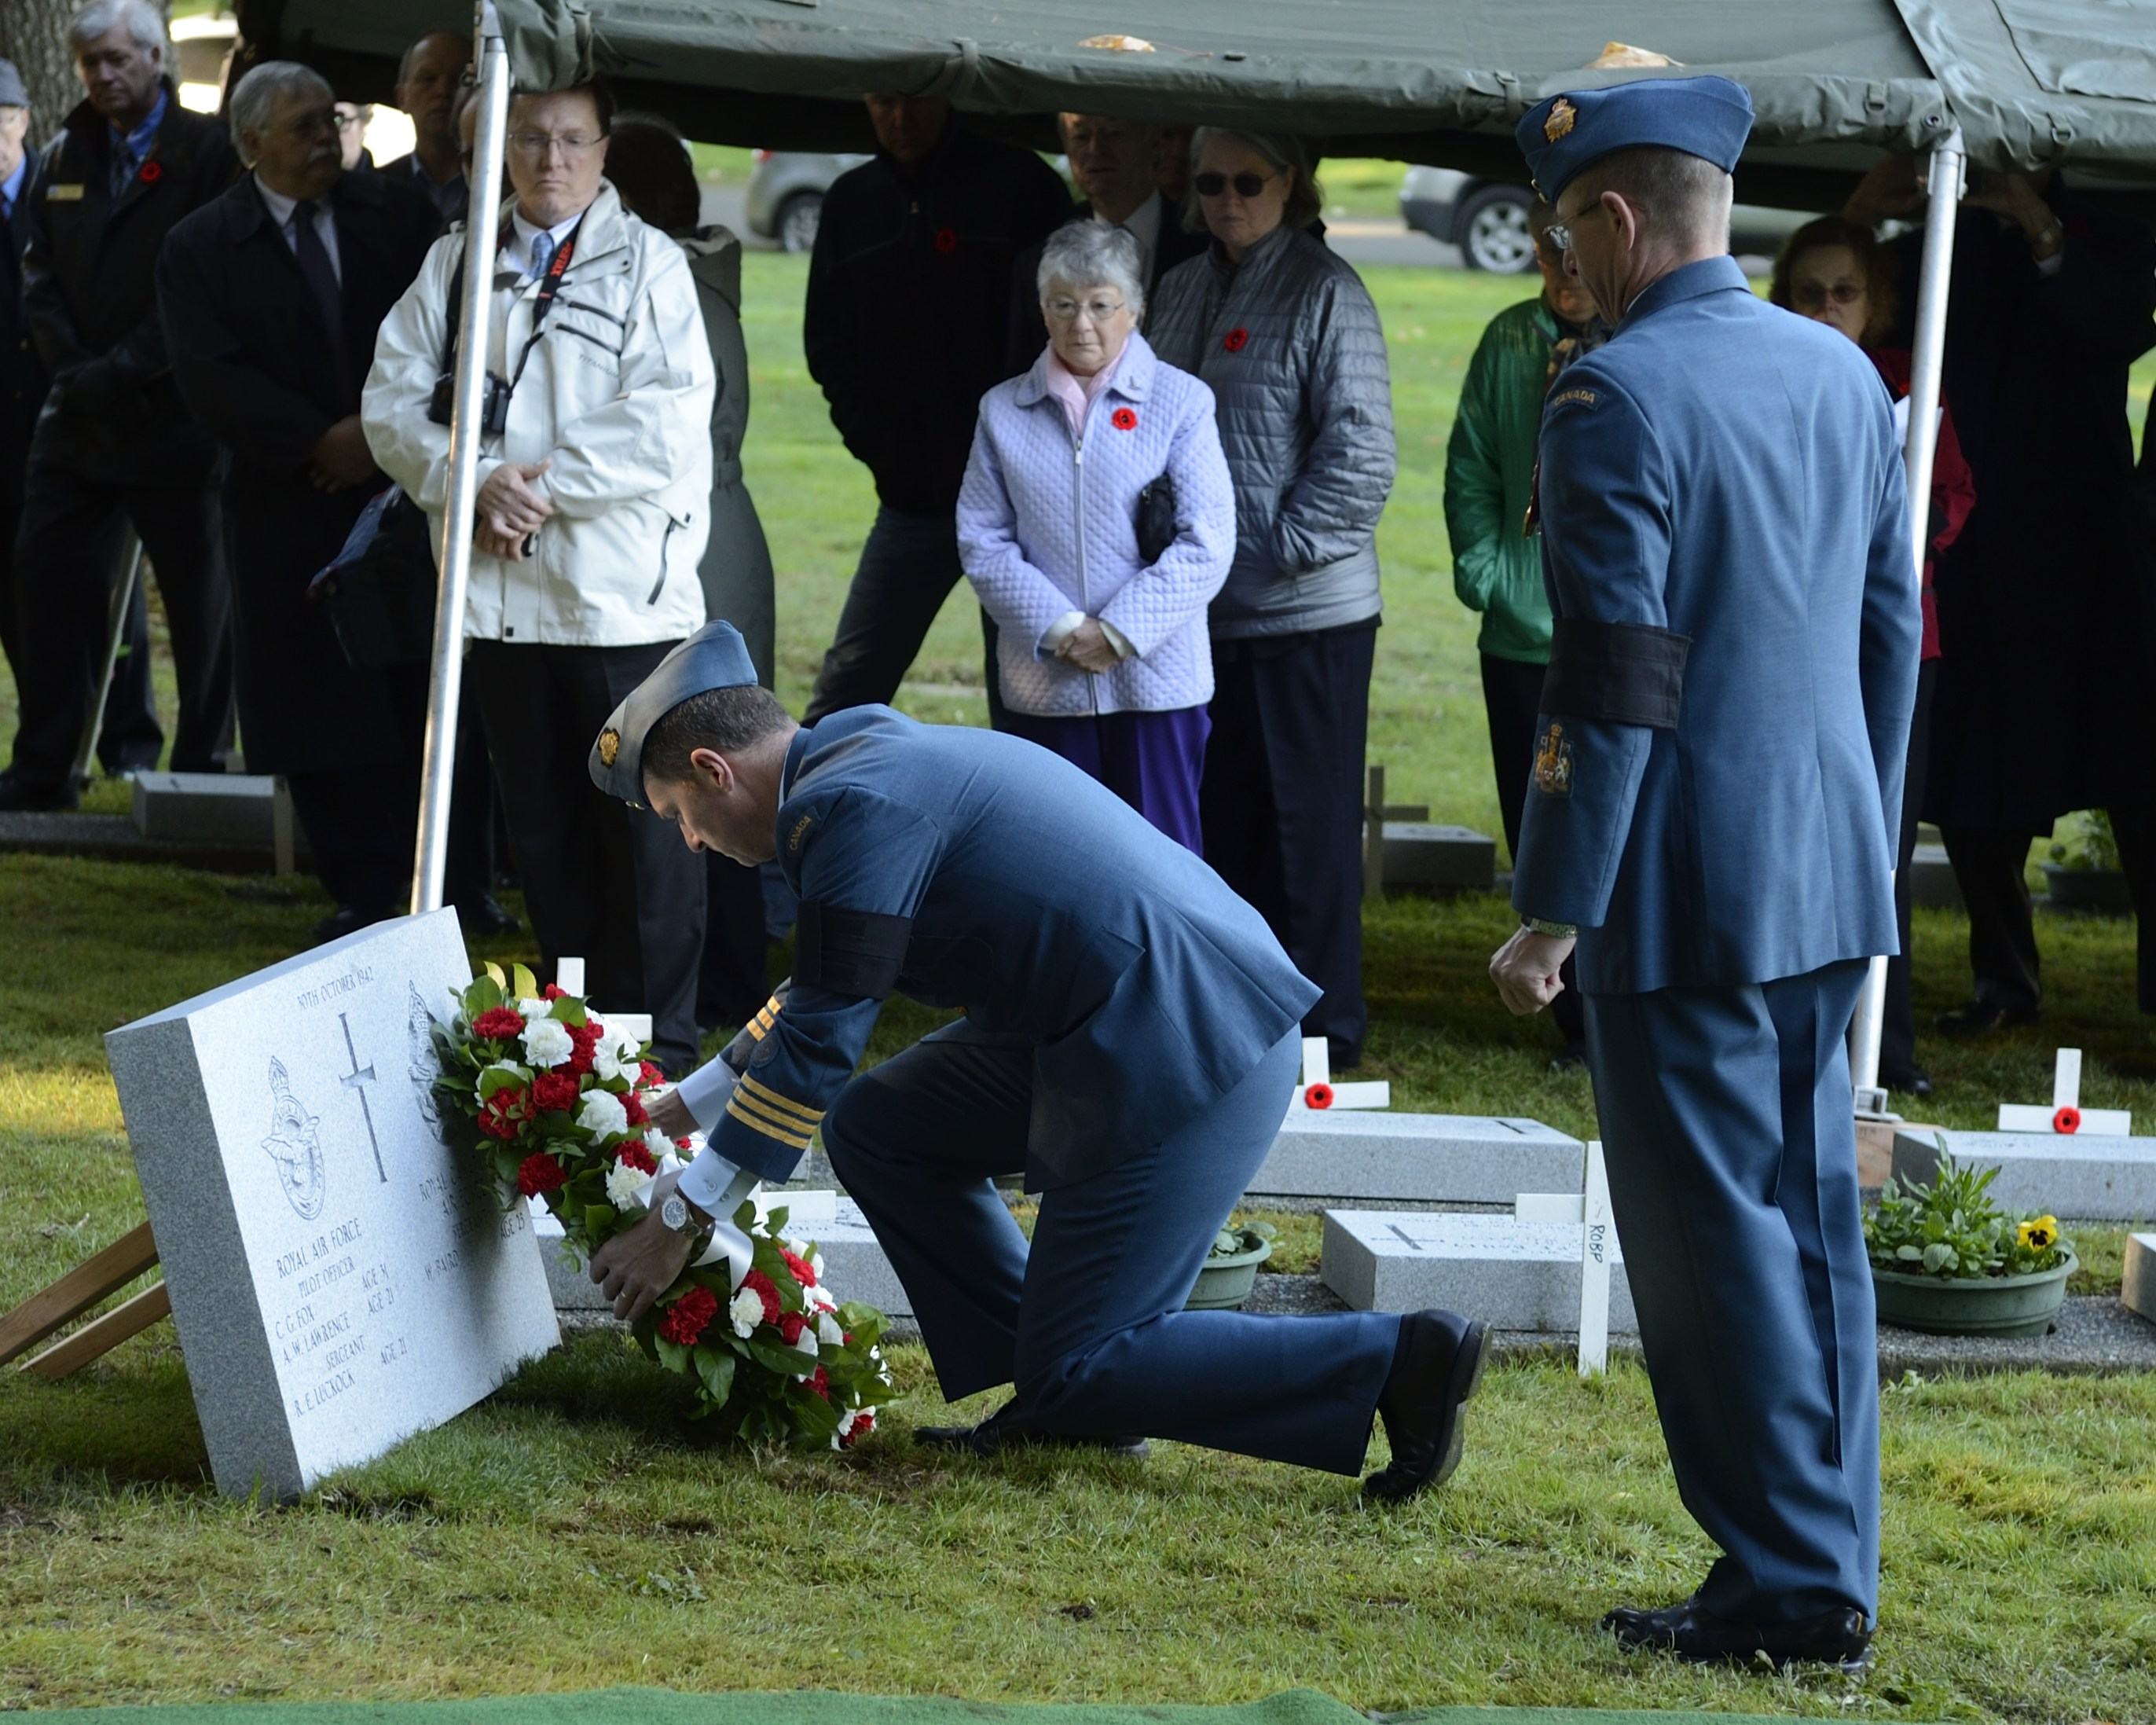 Lieutenant-Colonel Pat MacNamara, the commanding officer of 443 Maritime Helicopter Squadron, located at Patricia Bay, British Columbia, places a wreath during the interment service of Pilot Officer Charles George Fox, Pilot Officer Anthony William Lawrence, and Sergeant Robert Ernest Luckock, of the Royal Air Force (RAF), and RCAF Sergeant William Baird, the air crew of lost Avro Anson flight L7056, at Royal Oak Burial Park in Victoria, British Columbia, on November 10, 2014. PHOTO: Corporal Malcolm Byers